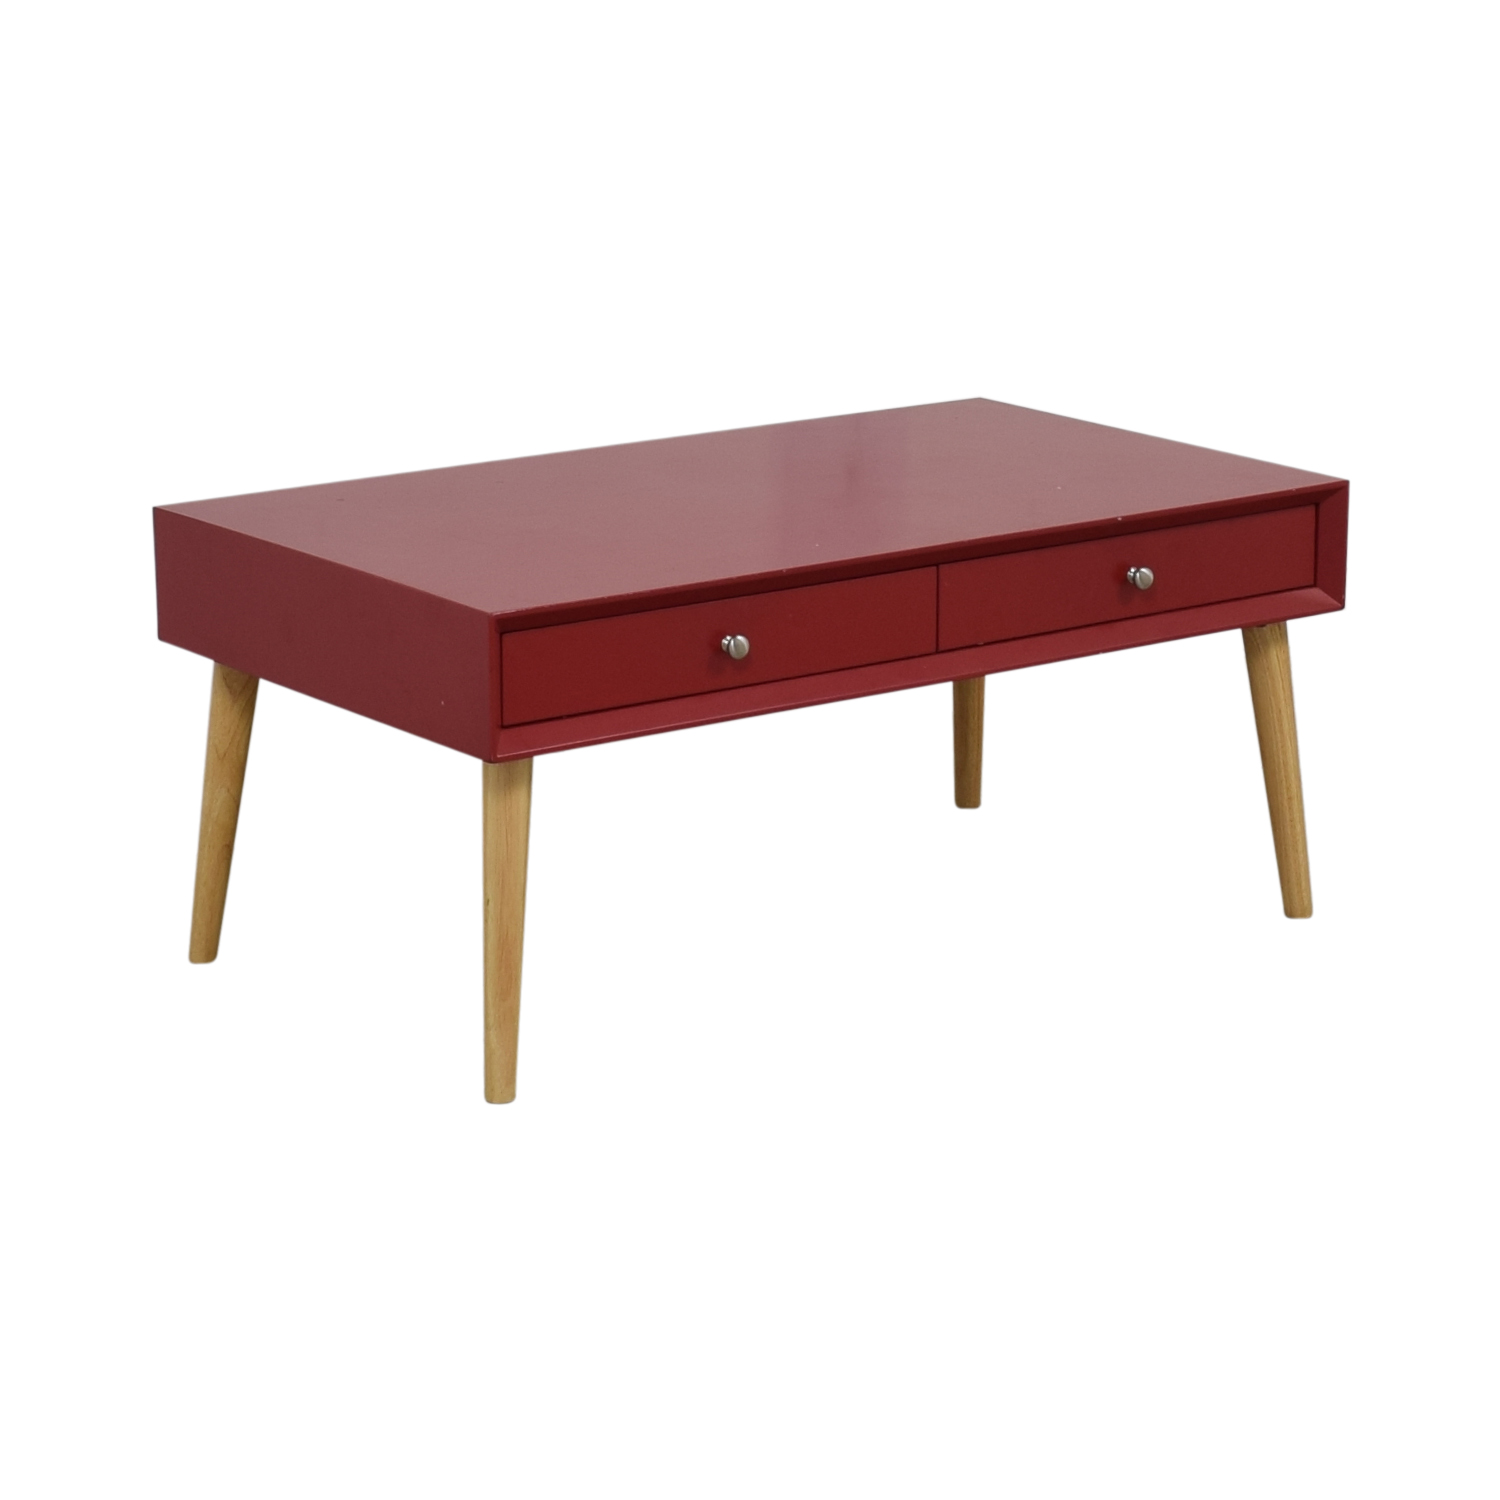 Awe Inspiring 53 Off Wayfair Wayfair Red Two Drawer Coffee Table Tables Uwap Interior Chair Design Uwaporg